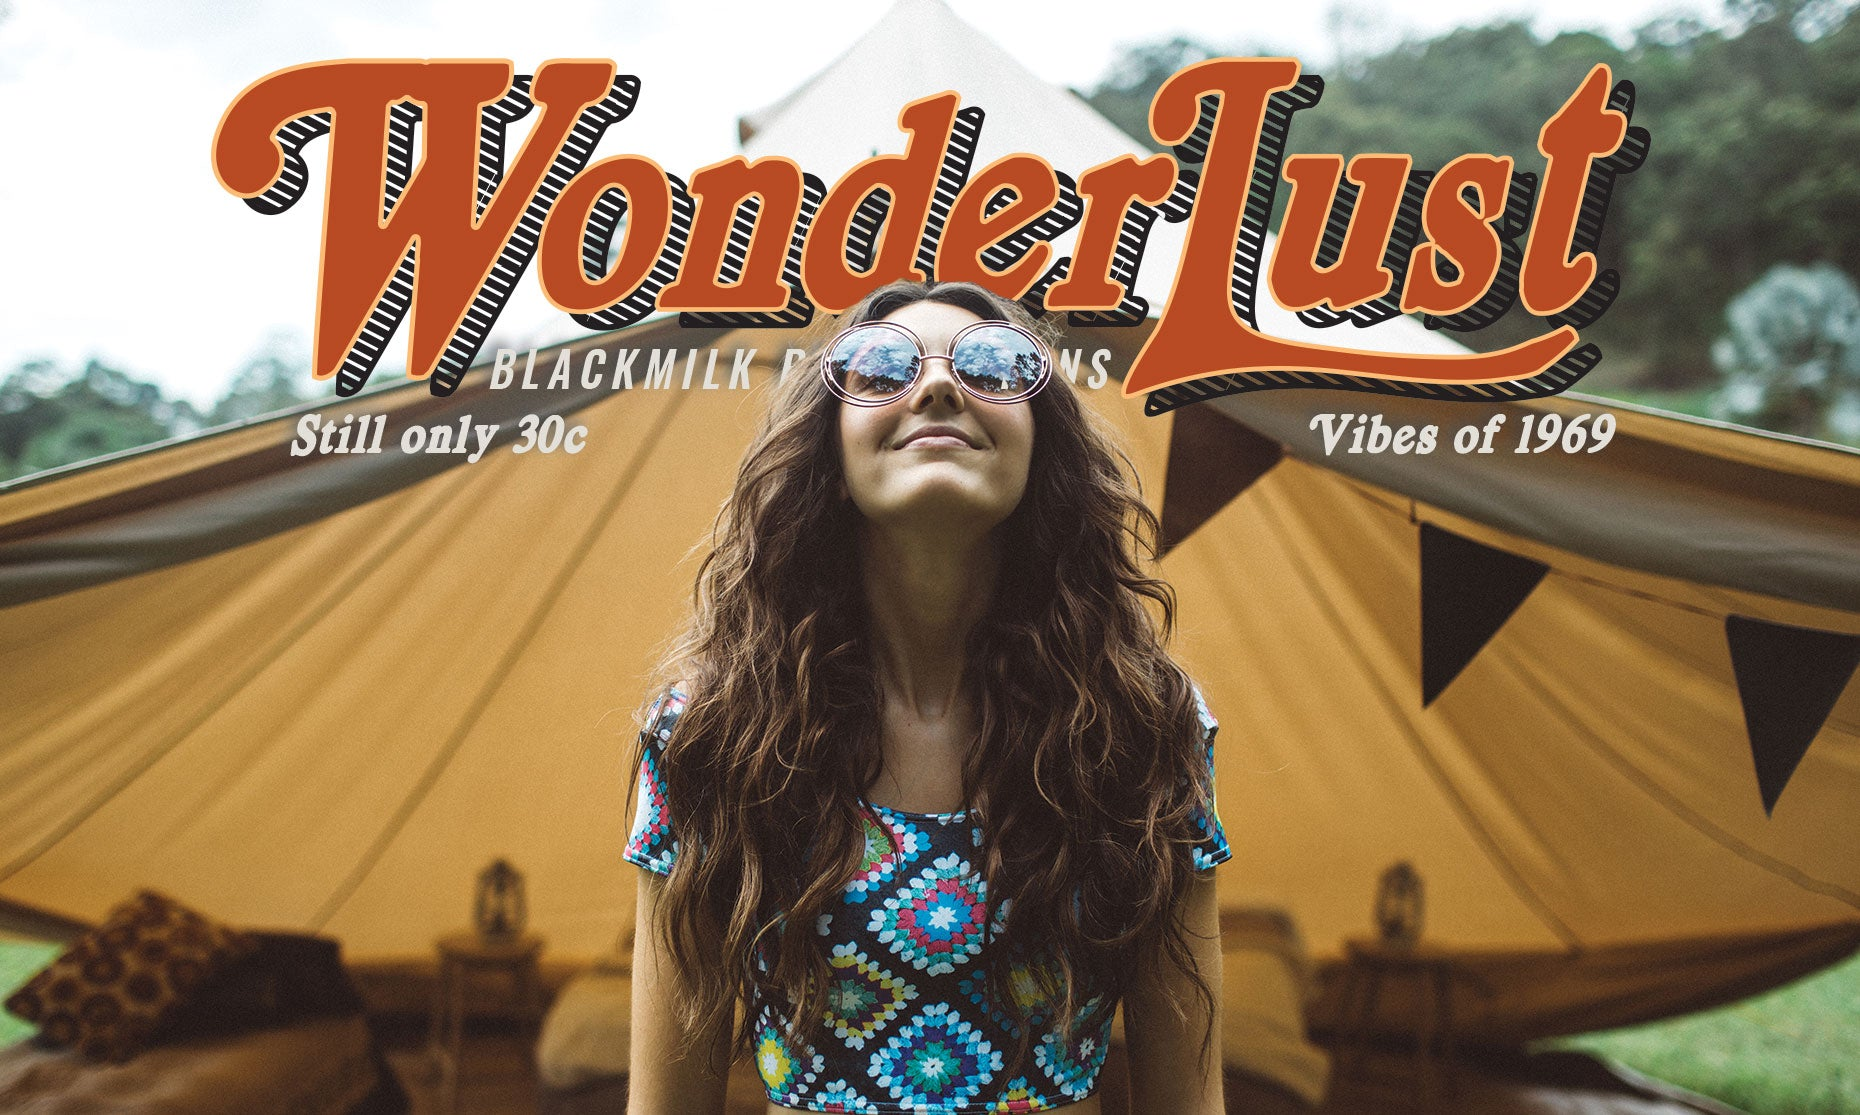 WonderLust - Vibes of 1968